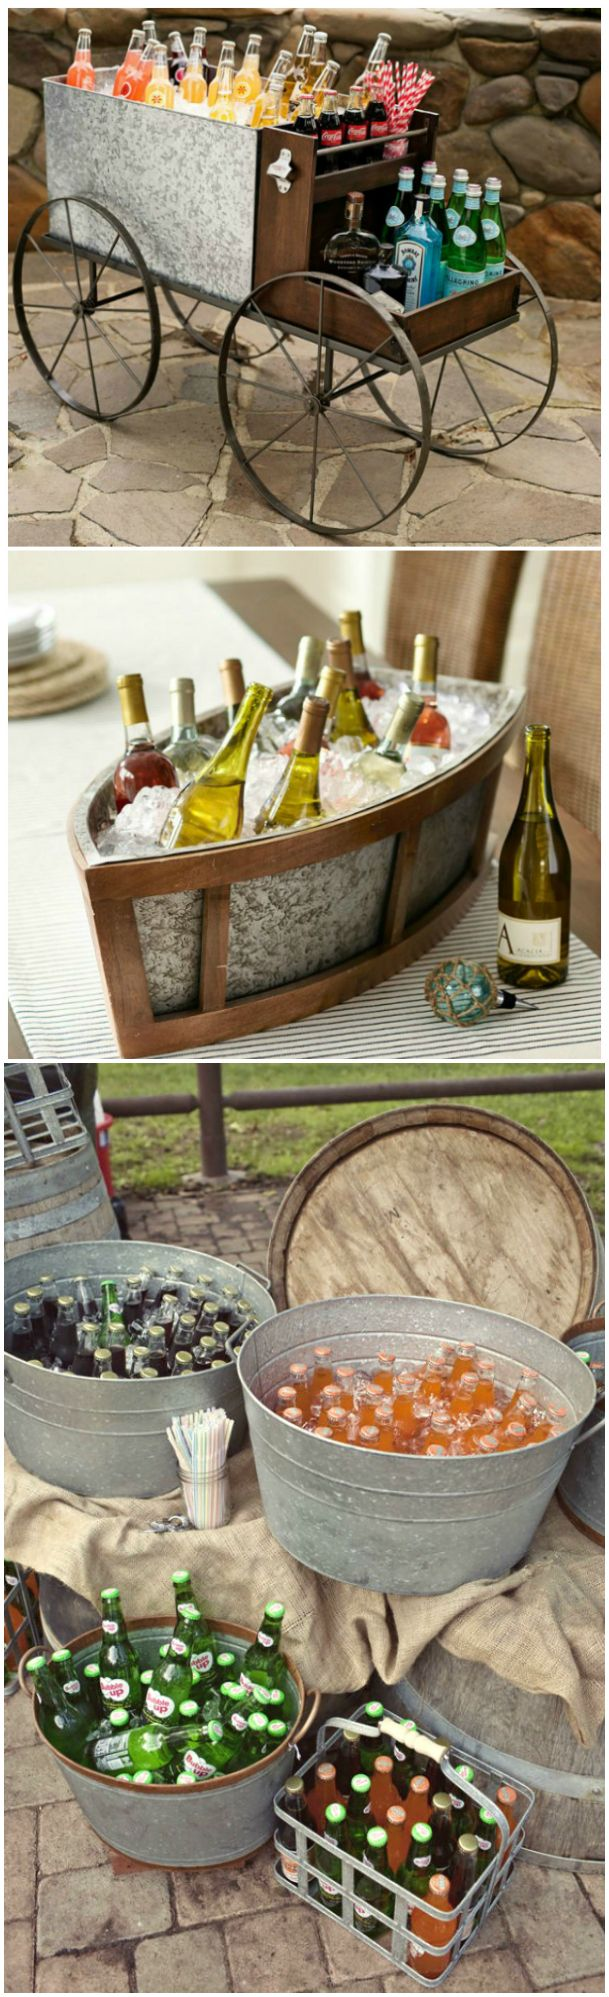 Beverage Serving Ideas ● Items from Pottery Barn. I like these ideas, I say - use whatever you have to use regardless of looks, and serve offering the best: Hospitality ... giving of yourself. A silver tray and a sour smile is not best. Annie Annette Peterson